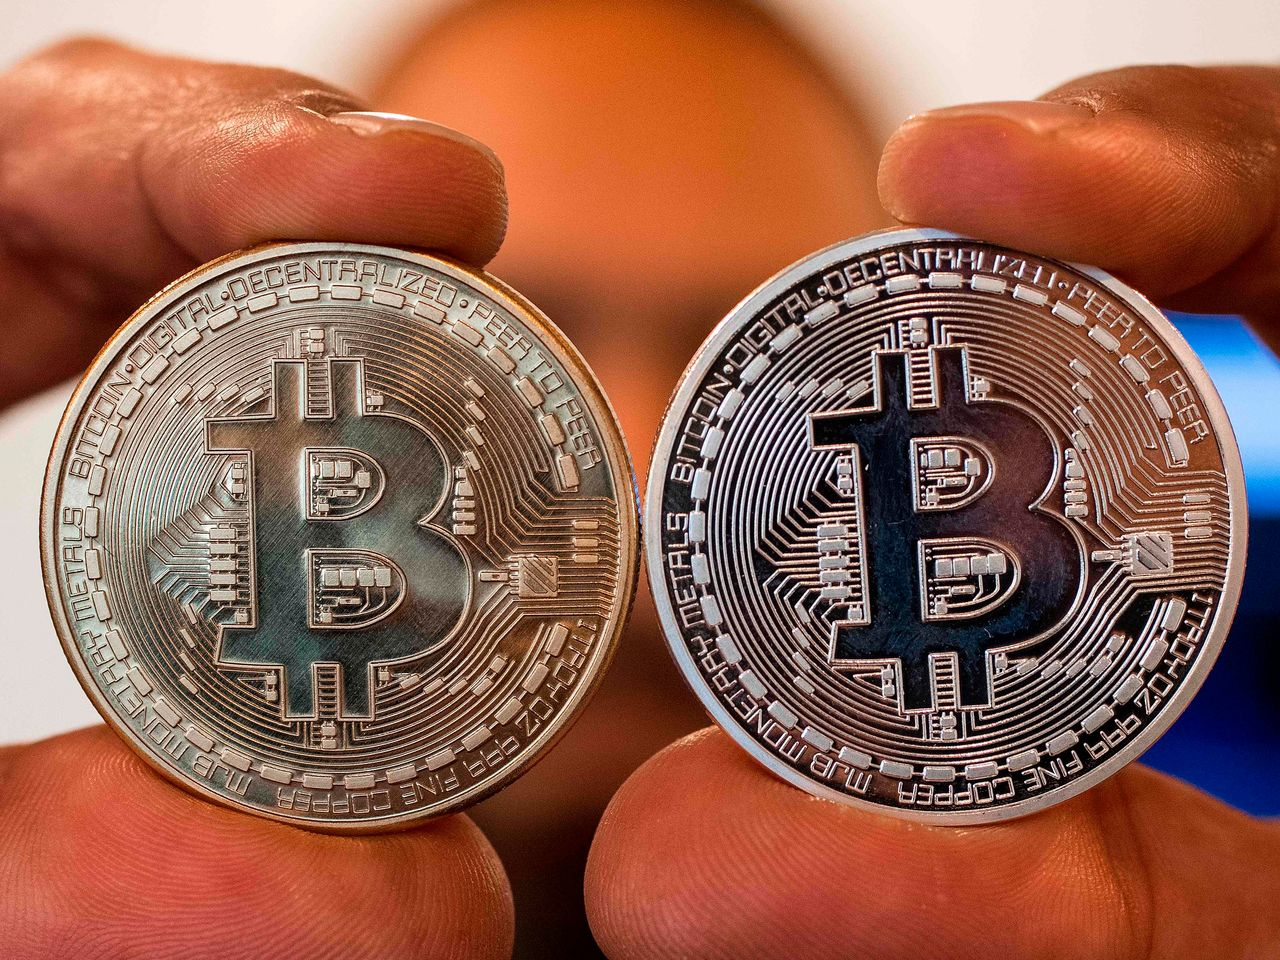 28 bitcoins for sale